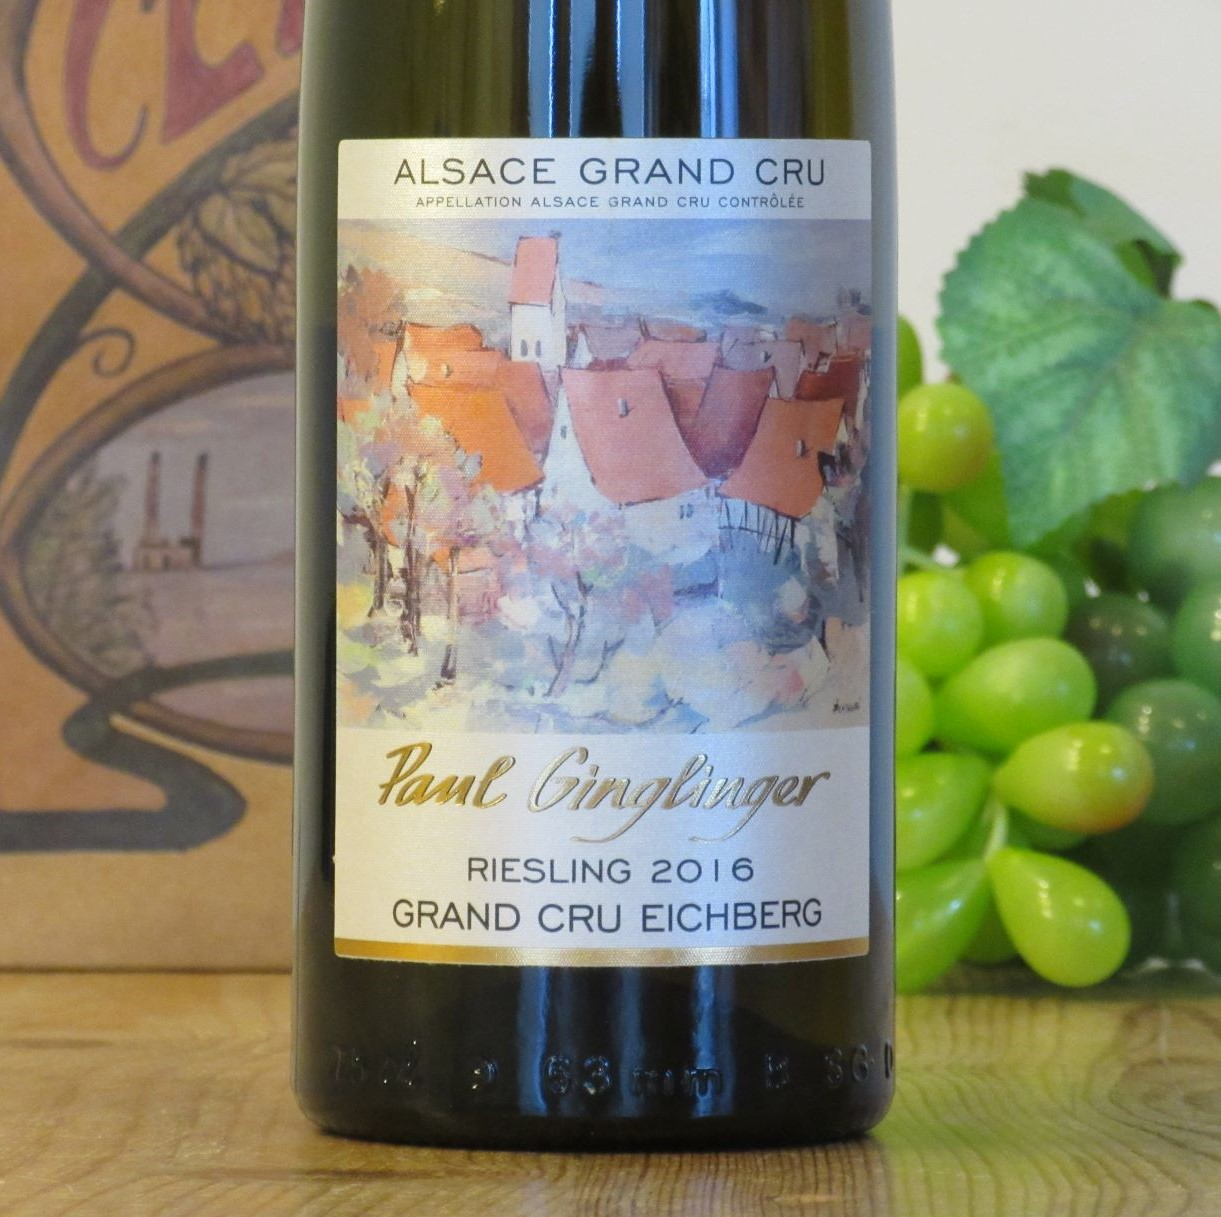 Paul Ginglinger Riesling 2016